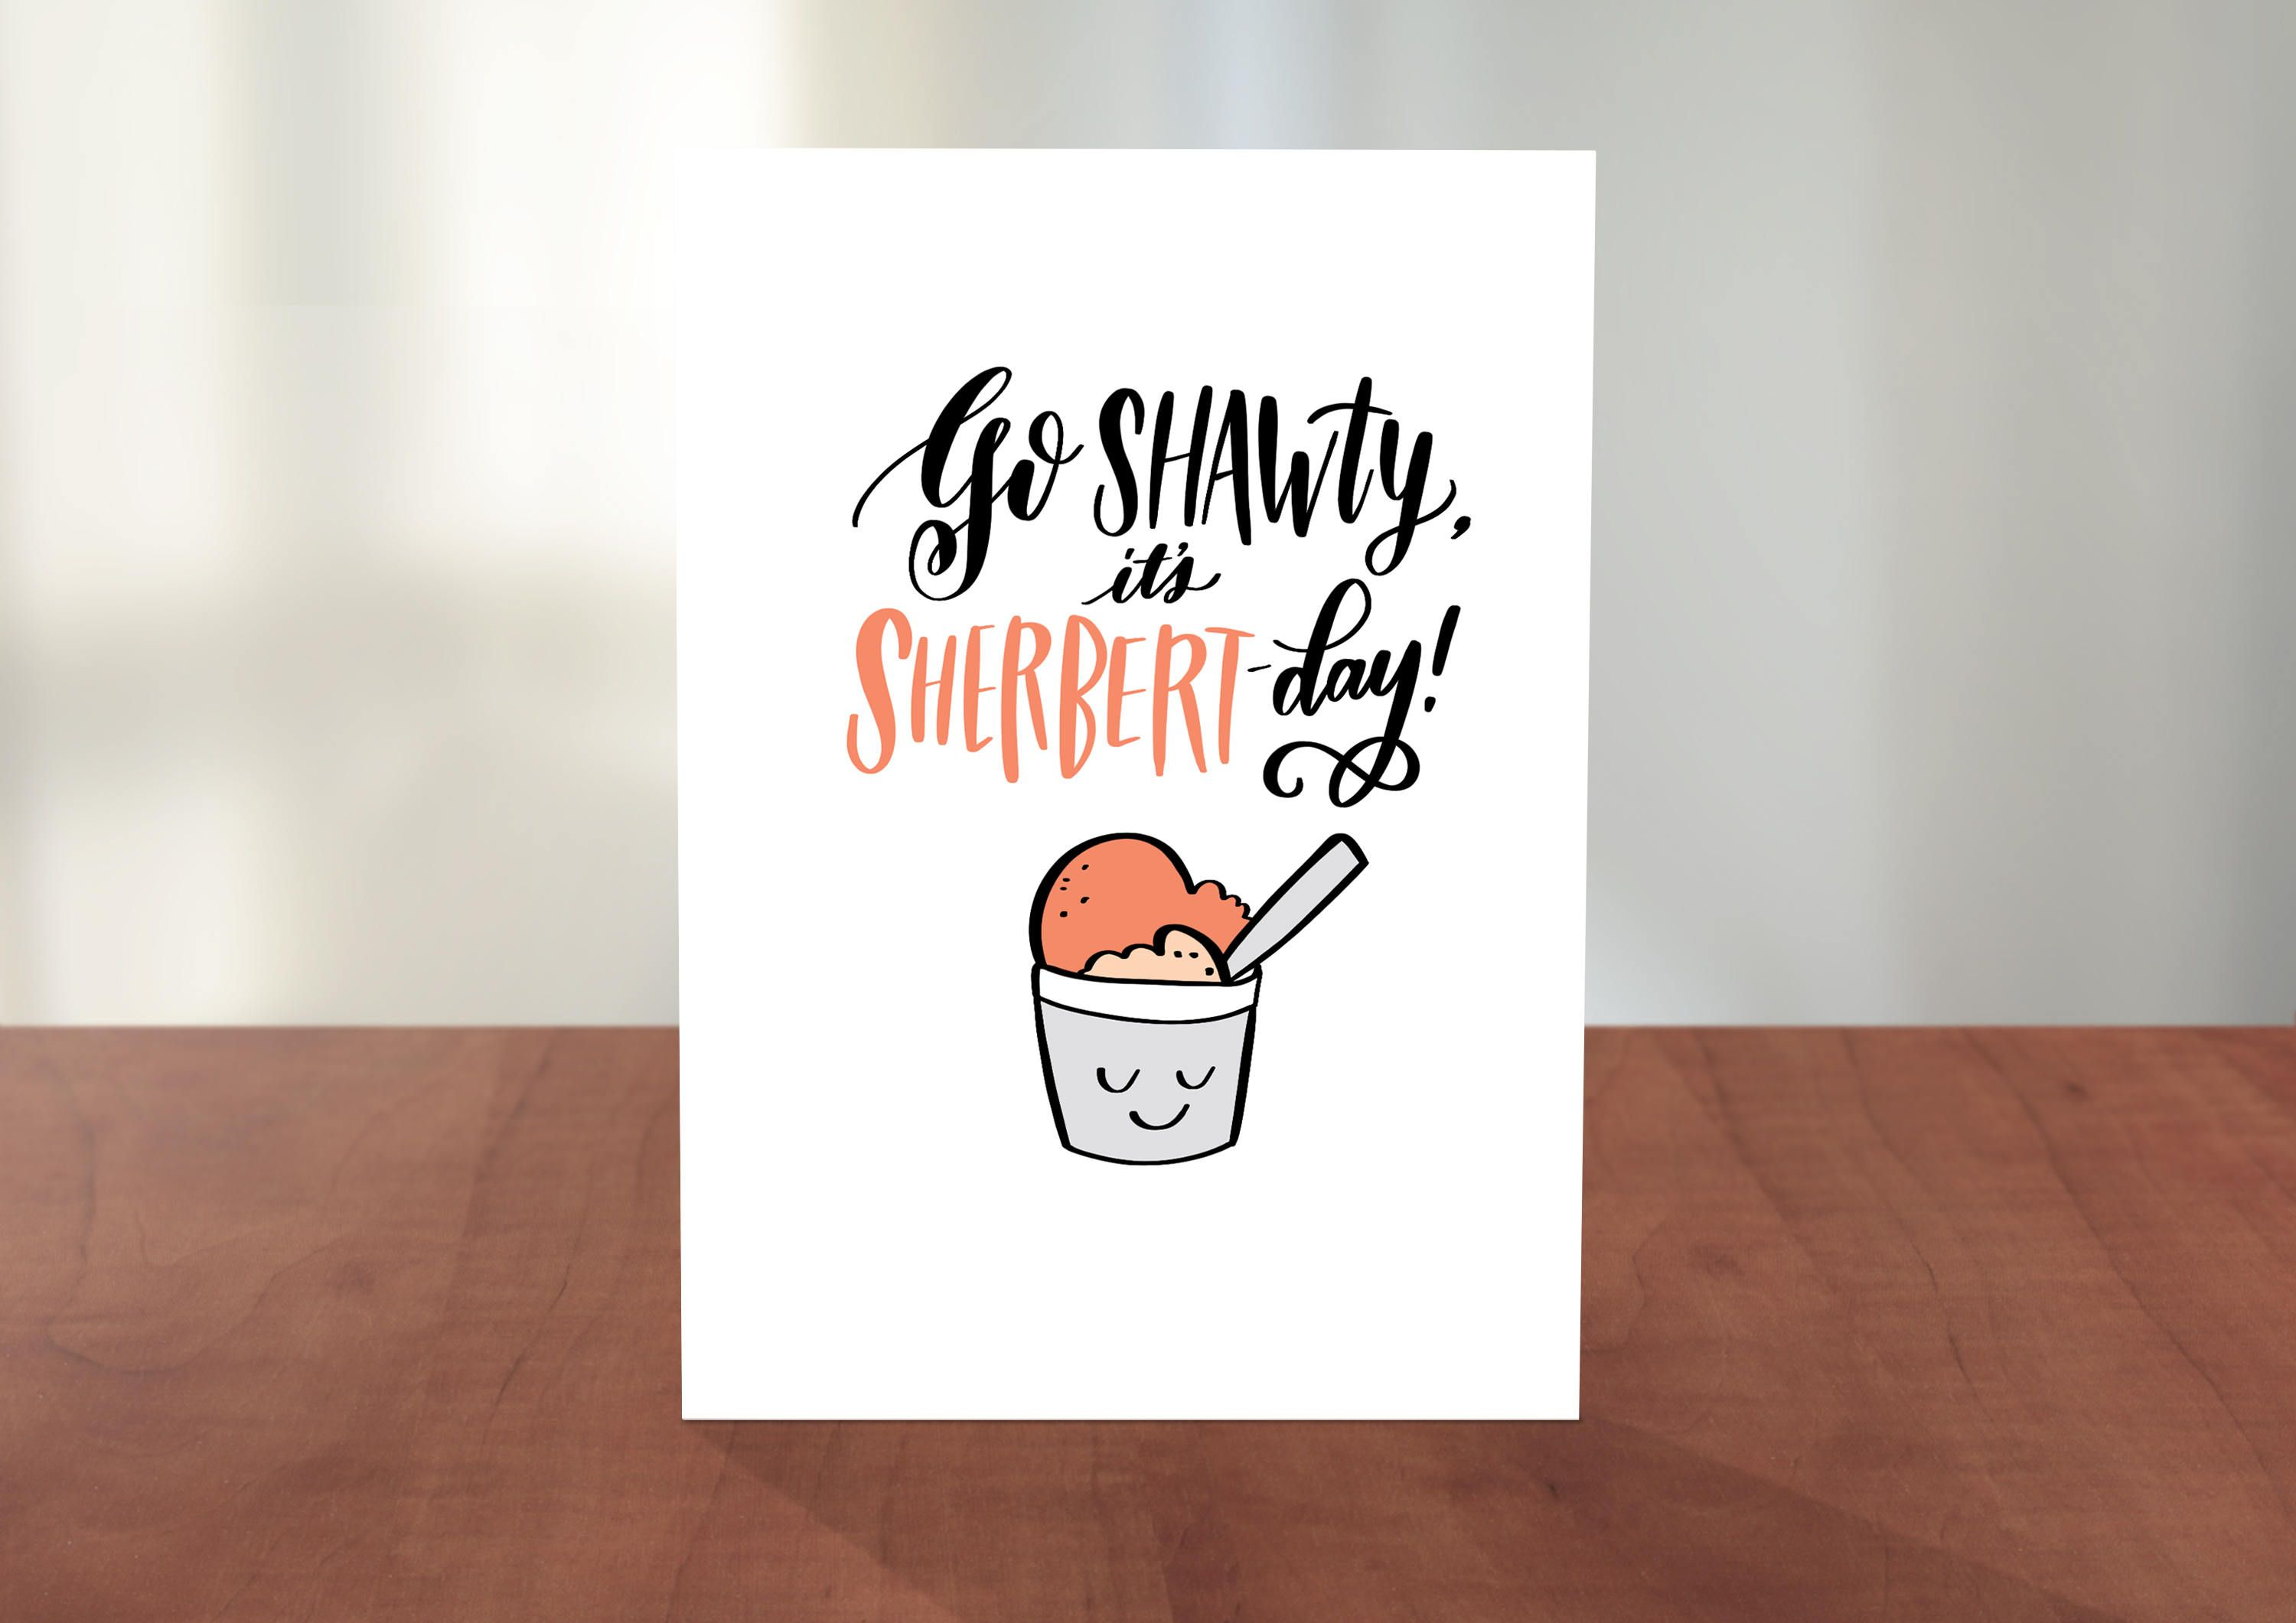 Birthday Card Food Puns ~ Updated design: go shawty it's sherbert day! funny food pun happy